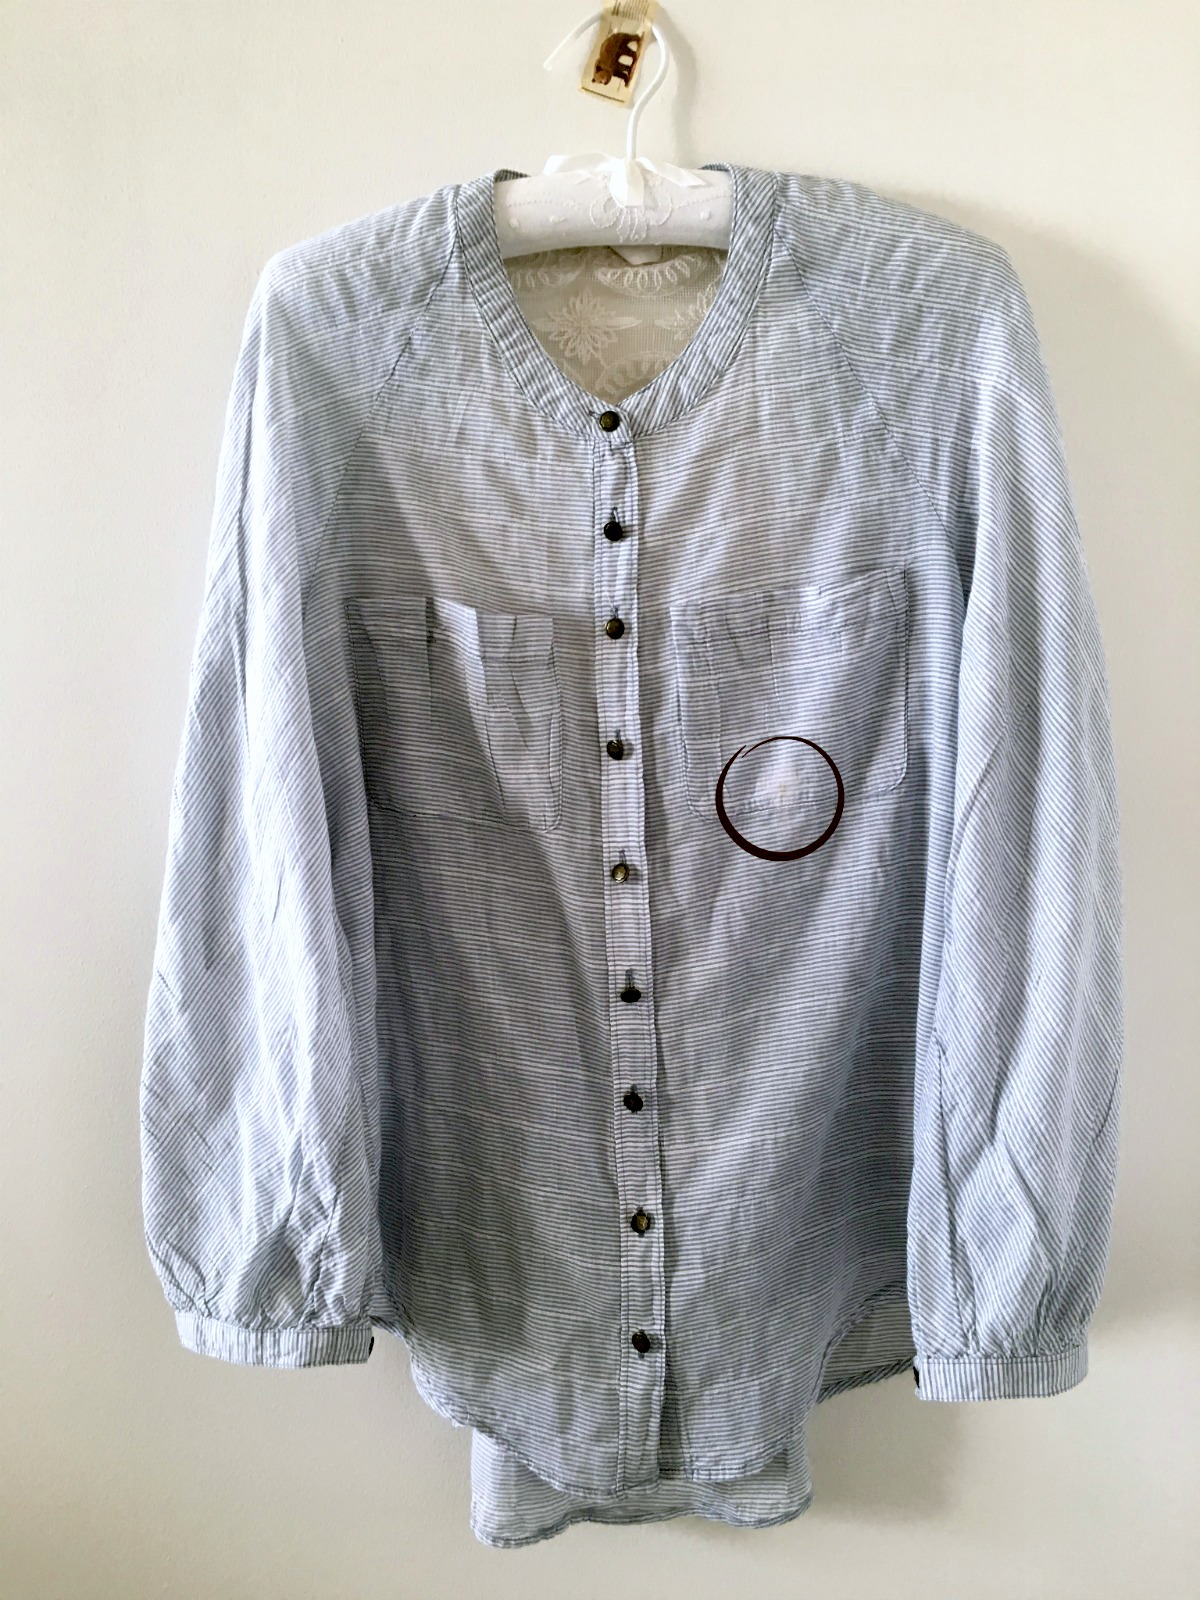 Shirt with stained pocket.